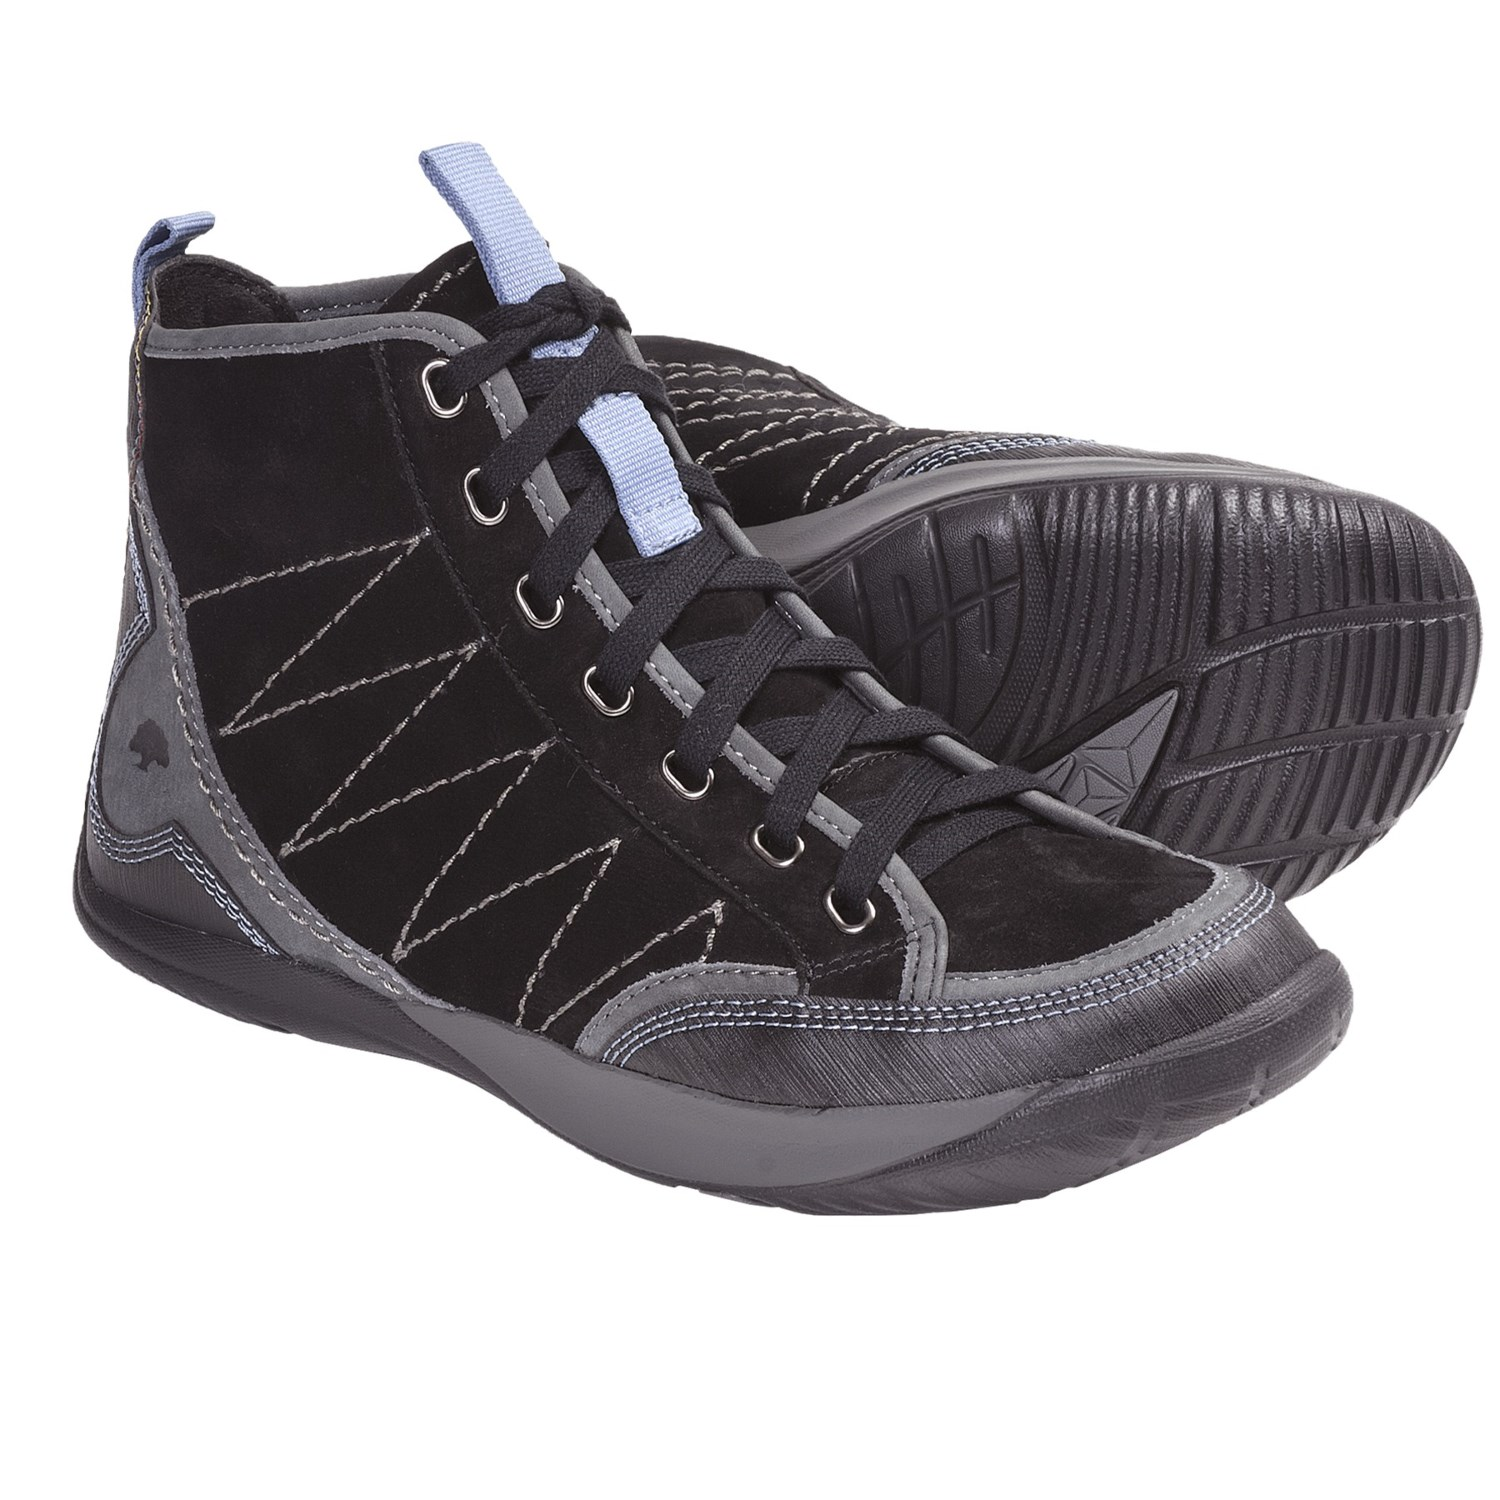 high top sneakers for women - photo #33